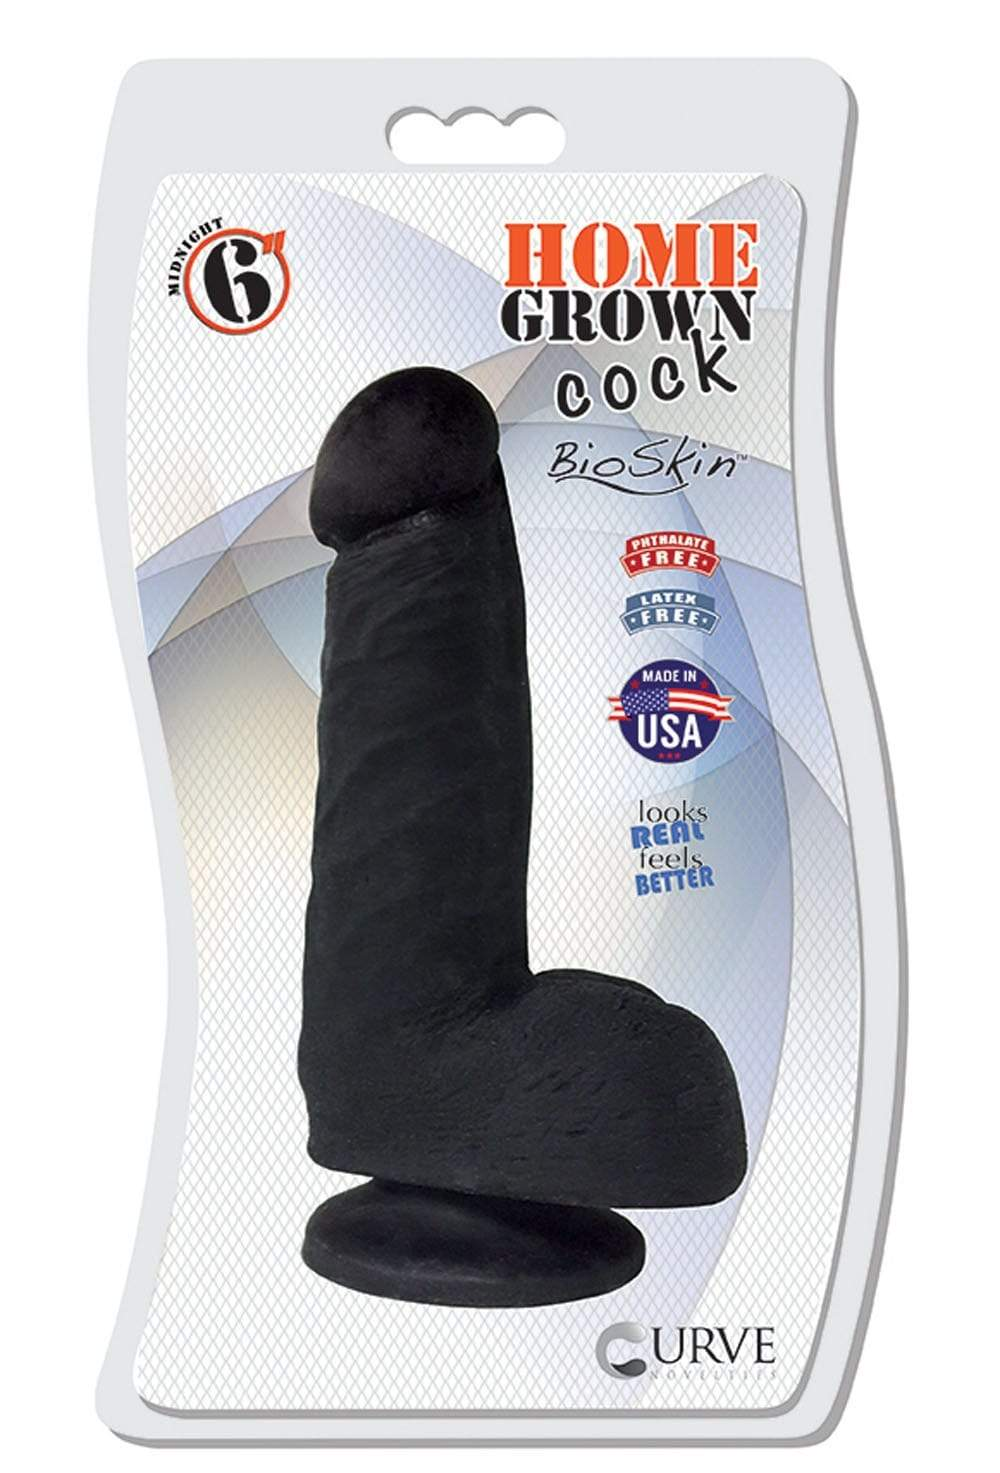 6 home grown cock midnight